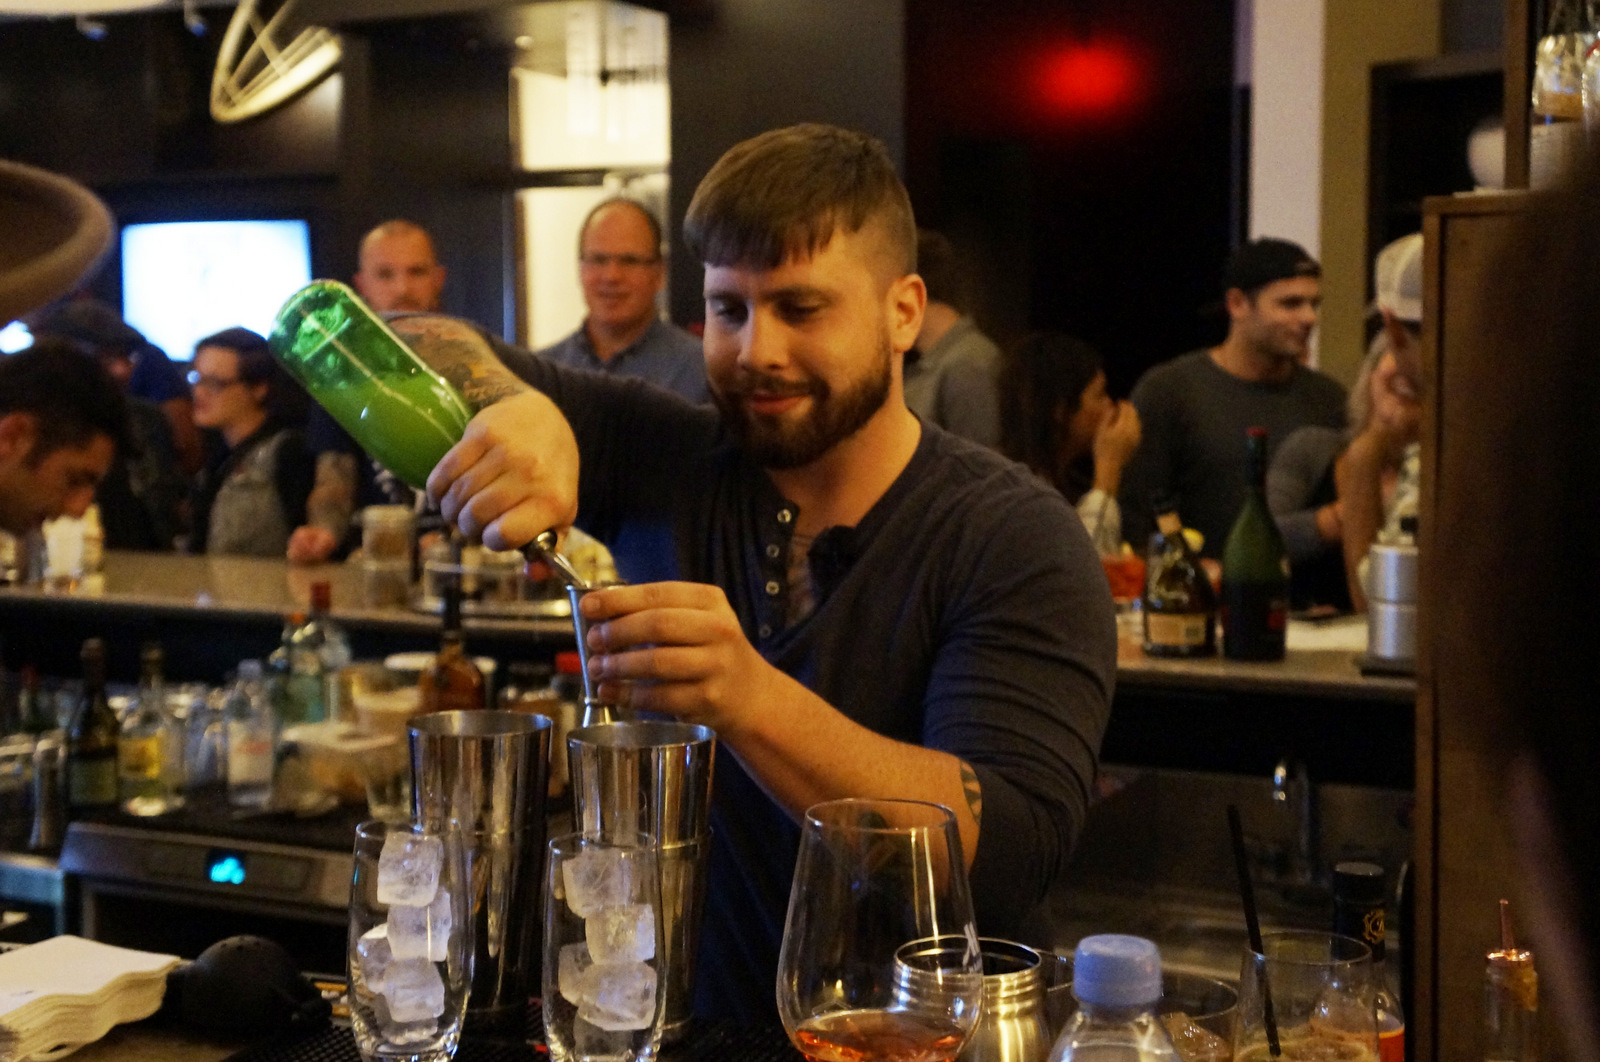 Joseph Whyte of Buffalo Proper took top honors at a U.S. Bartenders' Guild event last week. (Lizz Schumer/Special to The News)